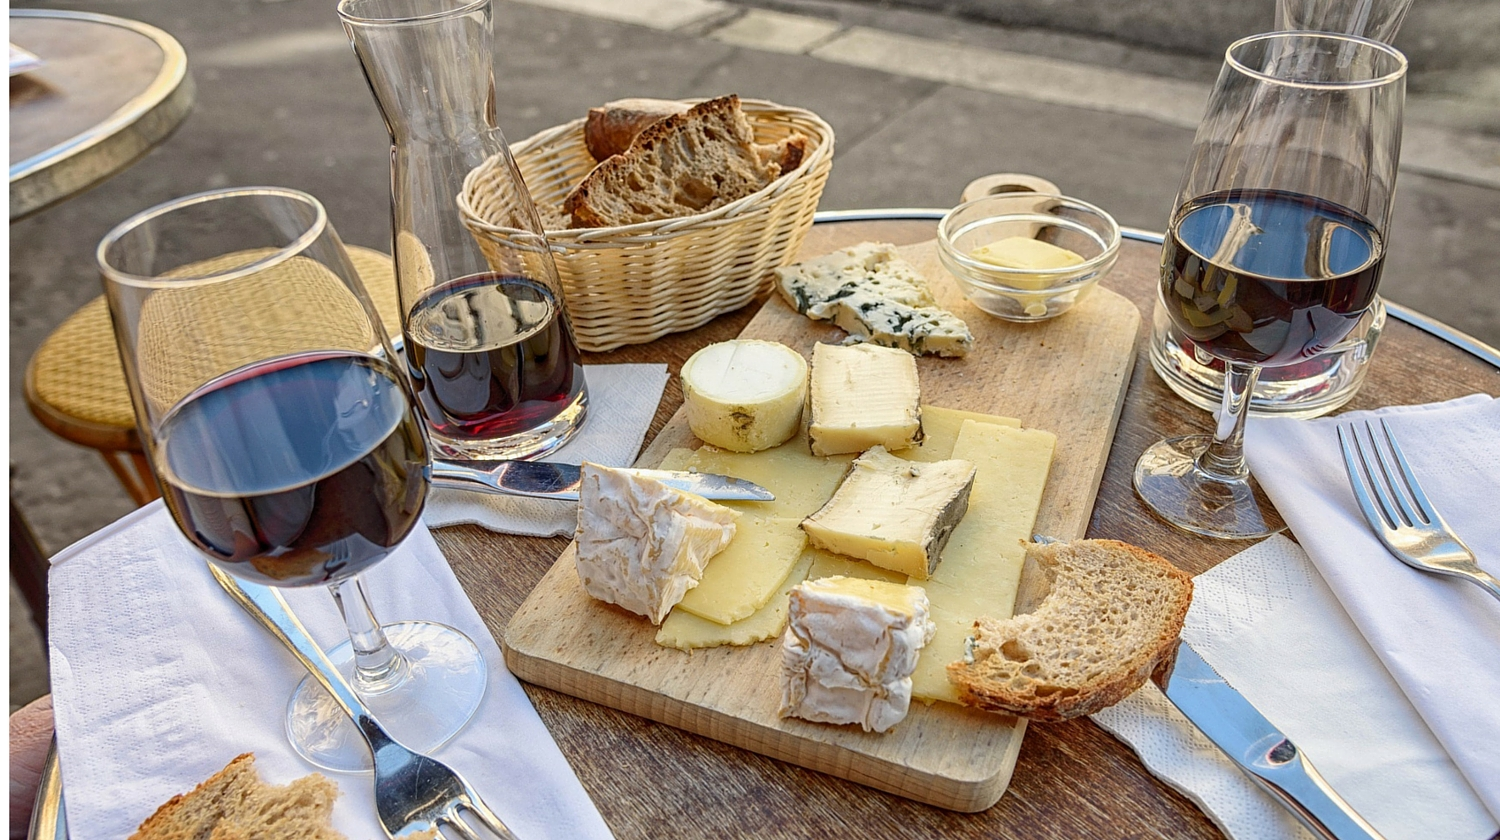 Easy Entertaining With Cheese and Wine